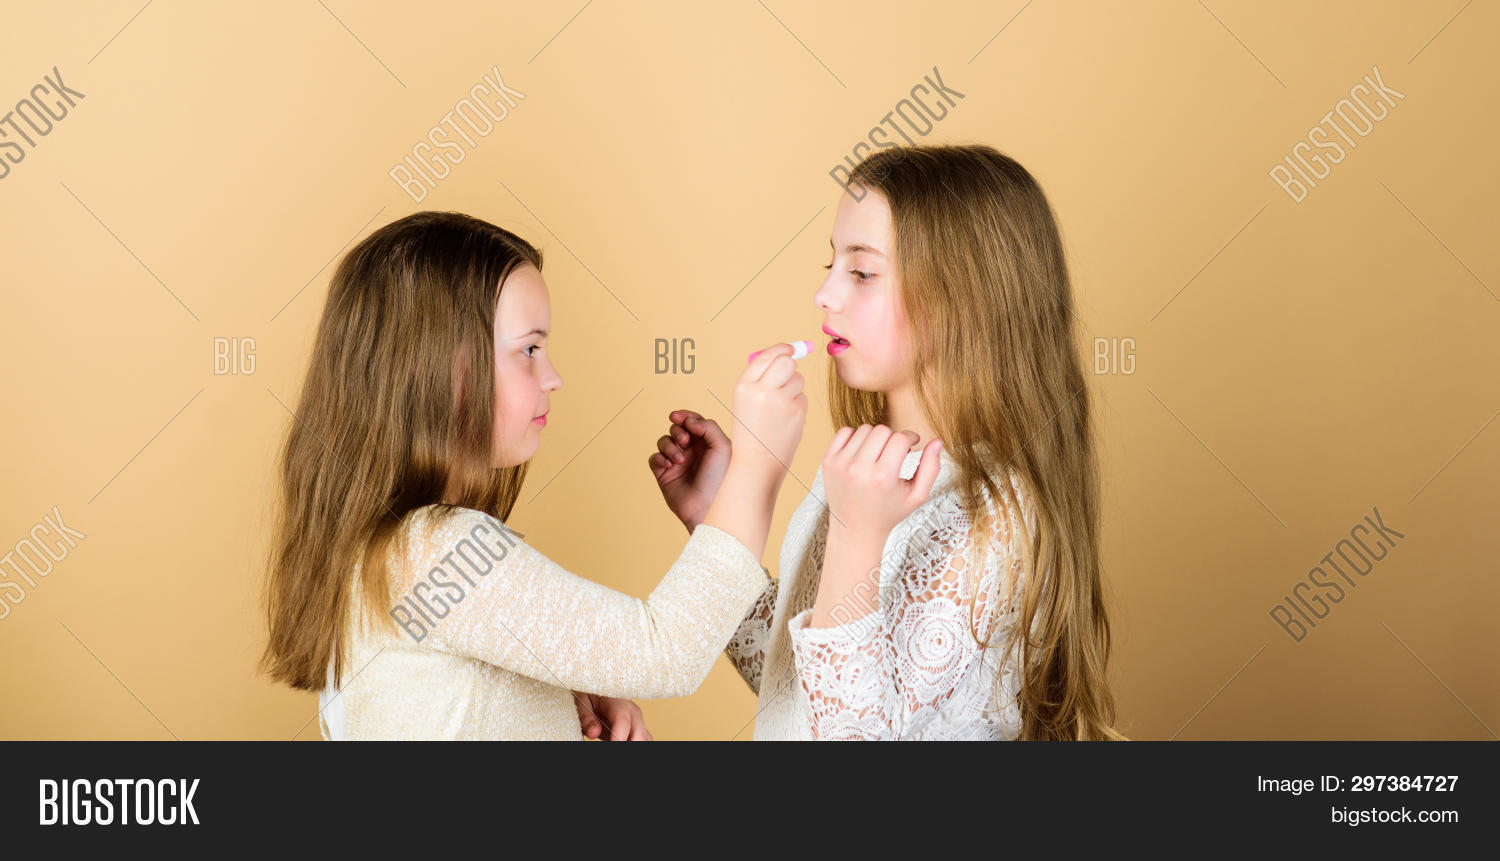 adorable,apply,applying,artist,babies,beautiful,beauty,children,colour,cosmetics,cute,decorative,designer,expert,face,facial,girls,glittering,gloss,glow,hair,kids,lipgloss,lips,lipstick,little,long,look,make-up,makeover,makeup,paint,painting,pretty,products,salon,sisters,skin,skincare,small,stylish,tools,tutorial,visage,visagiste